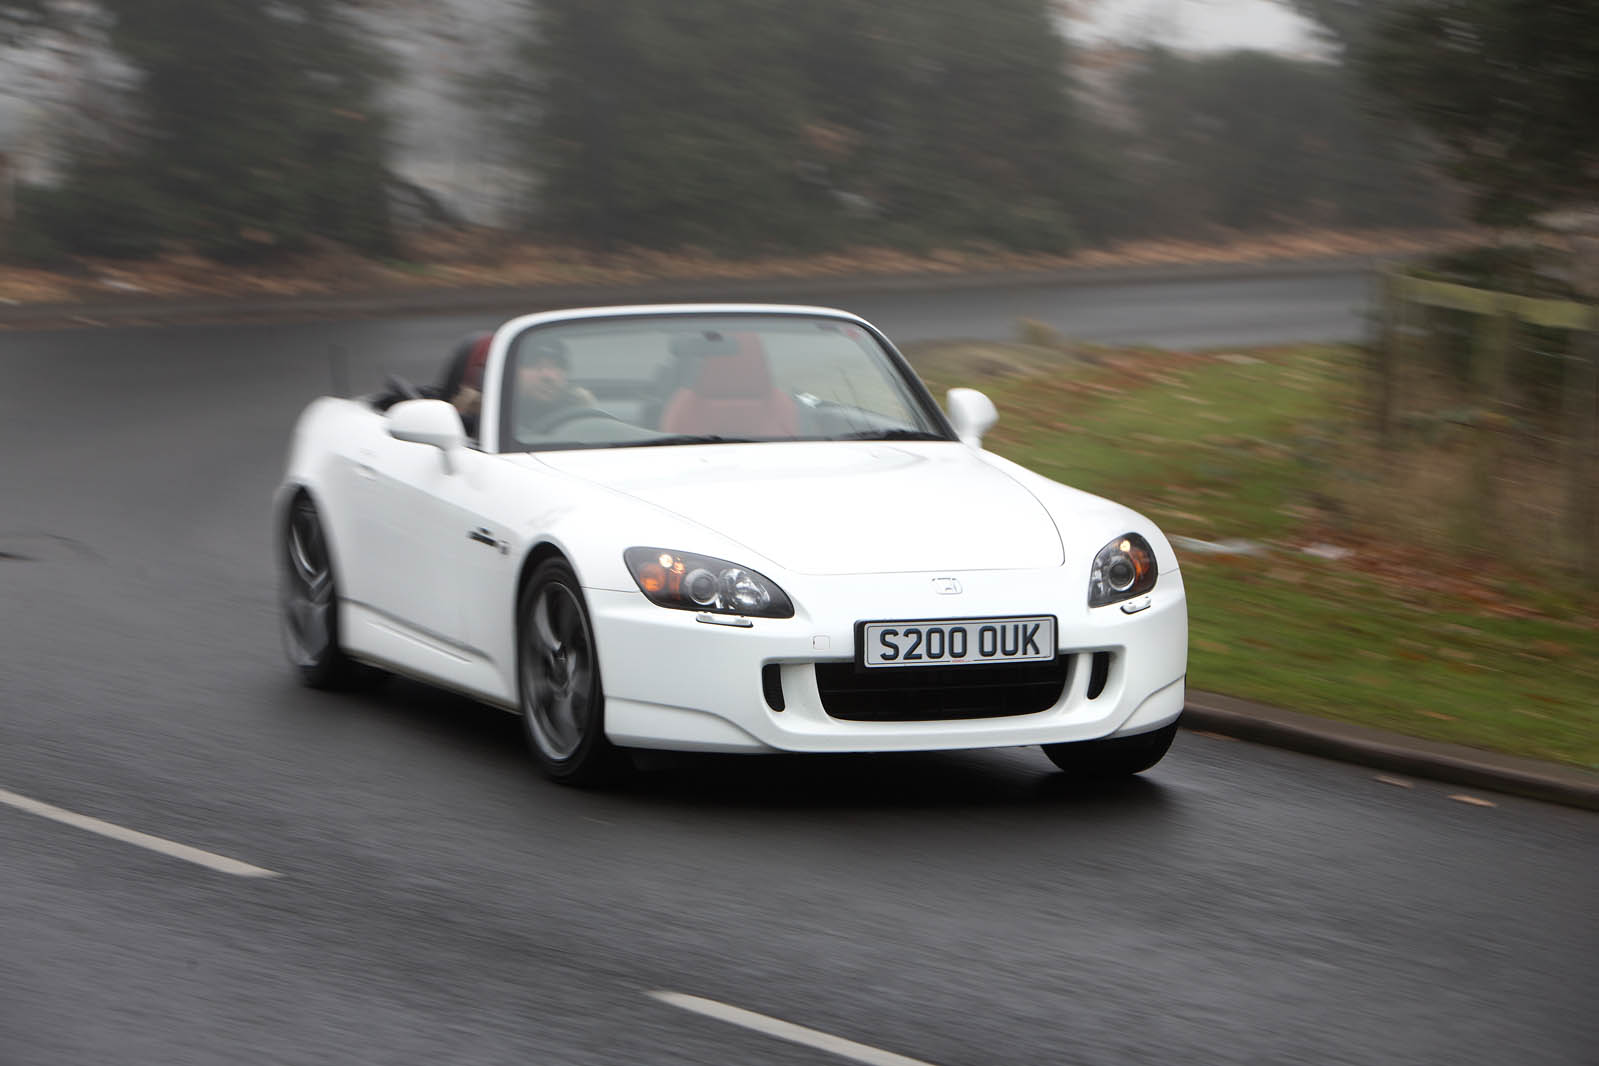 honda s2000 used car buying guide autocar. Black Bedroom Furniture Sets. Home Design Ideas